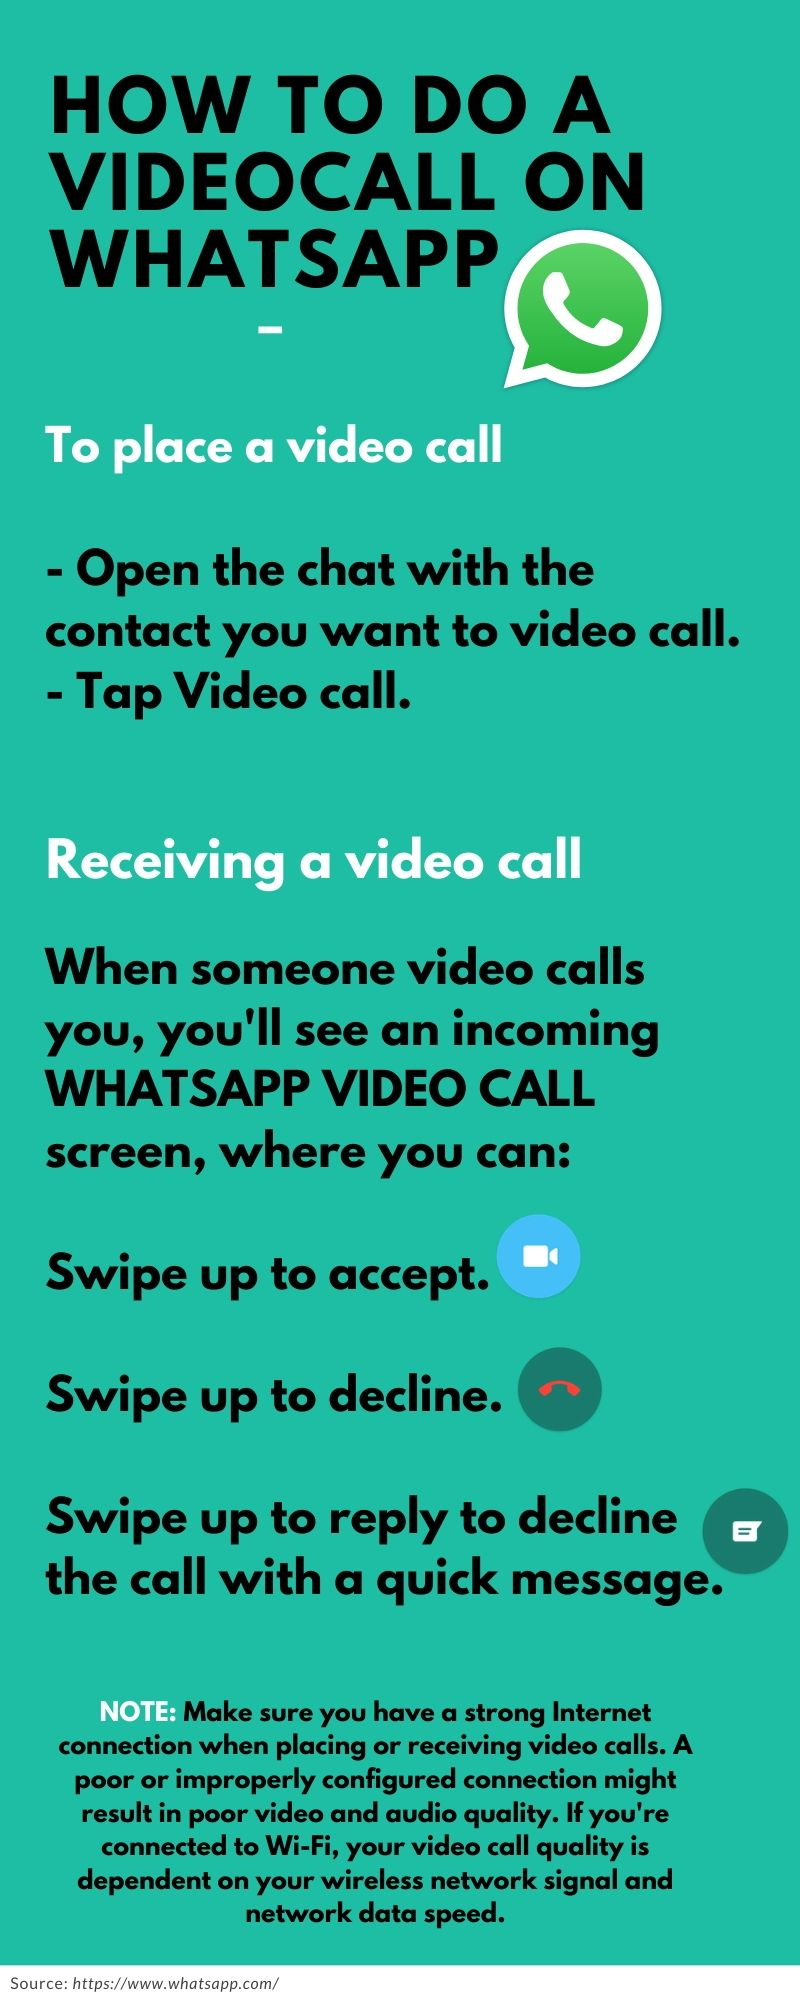 How to do a videocall on Whatsapp